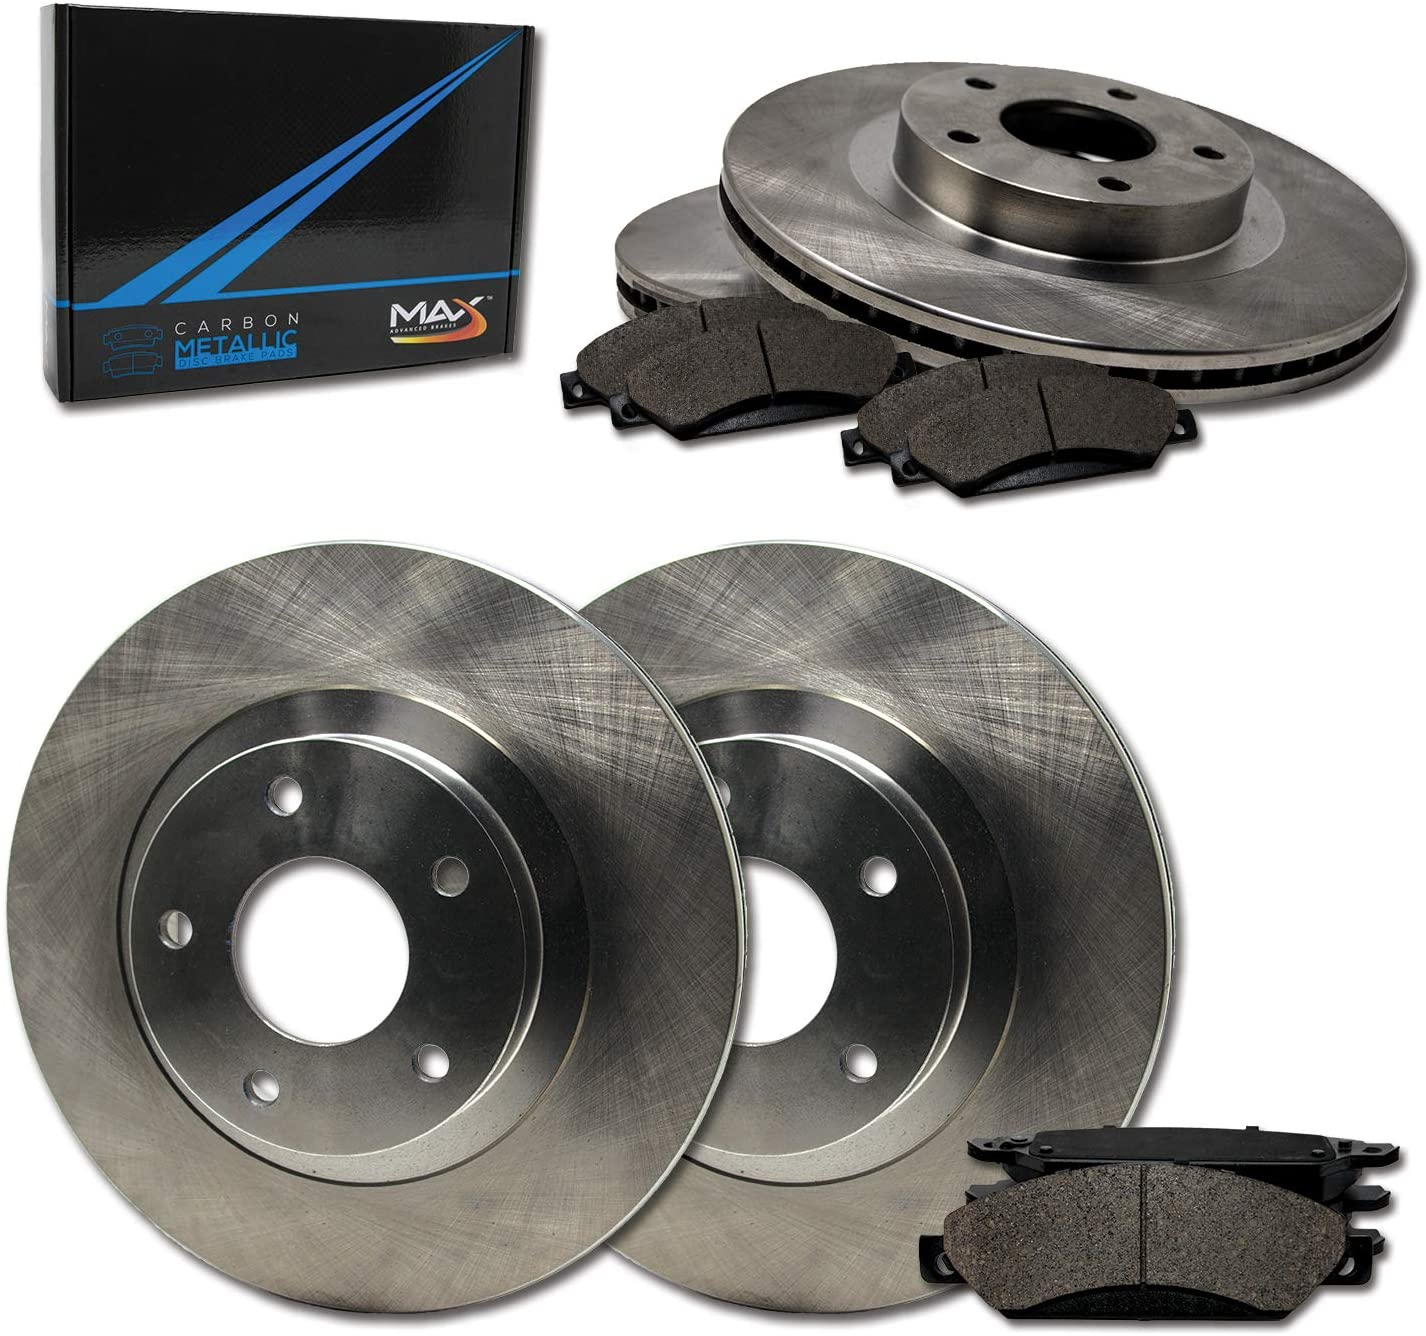 Fits: 2007 07 Suzuki SX4 w//Rear Disc Brakes Max Brakes Front /& Rear Premium Brake Kit TA103643 OE Series Rotors + Metallic Pads